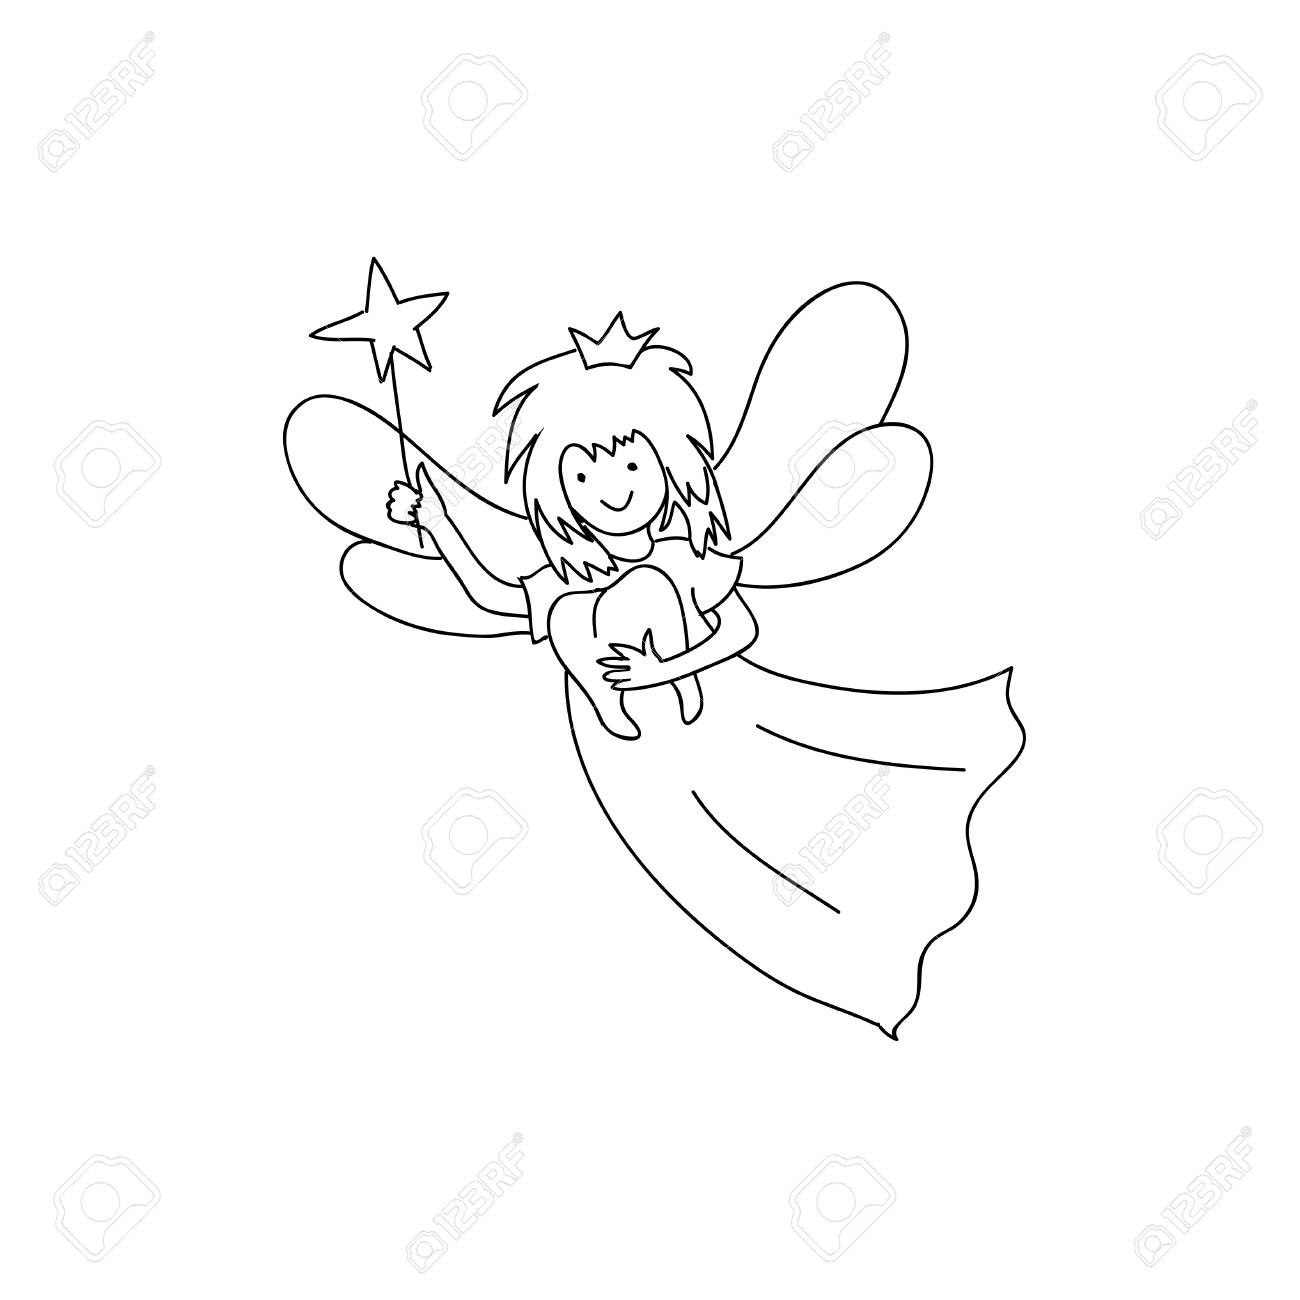 Tooth fairy holding teeth children coloring page line art isolated..